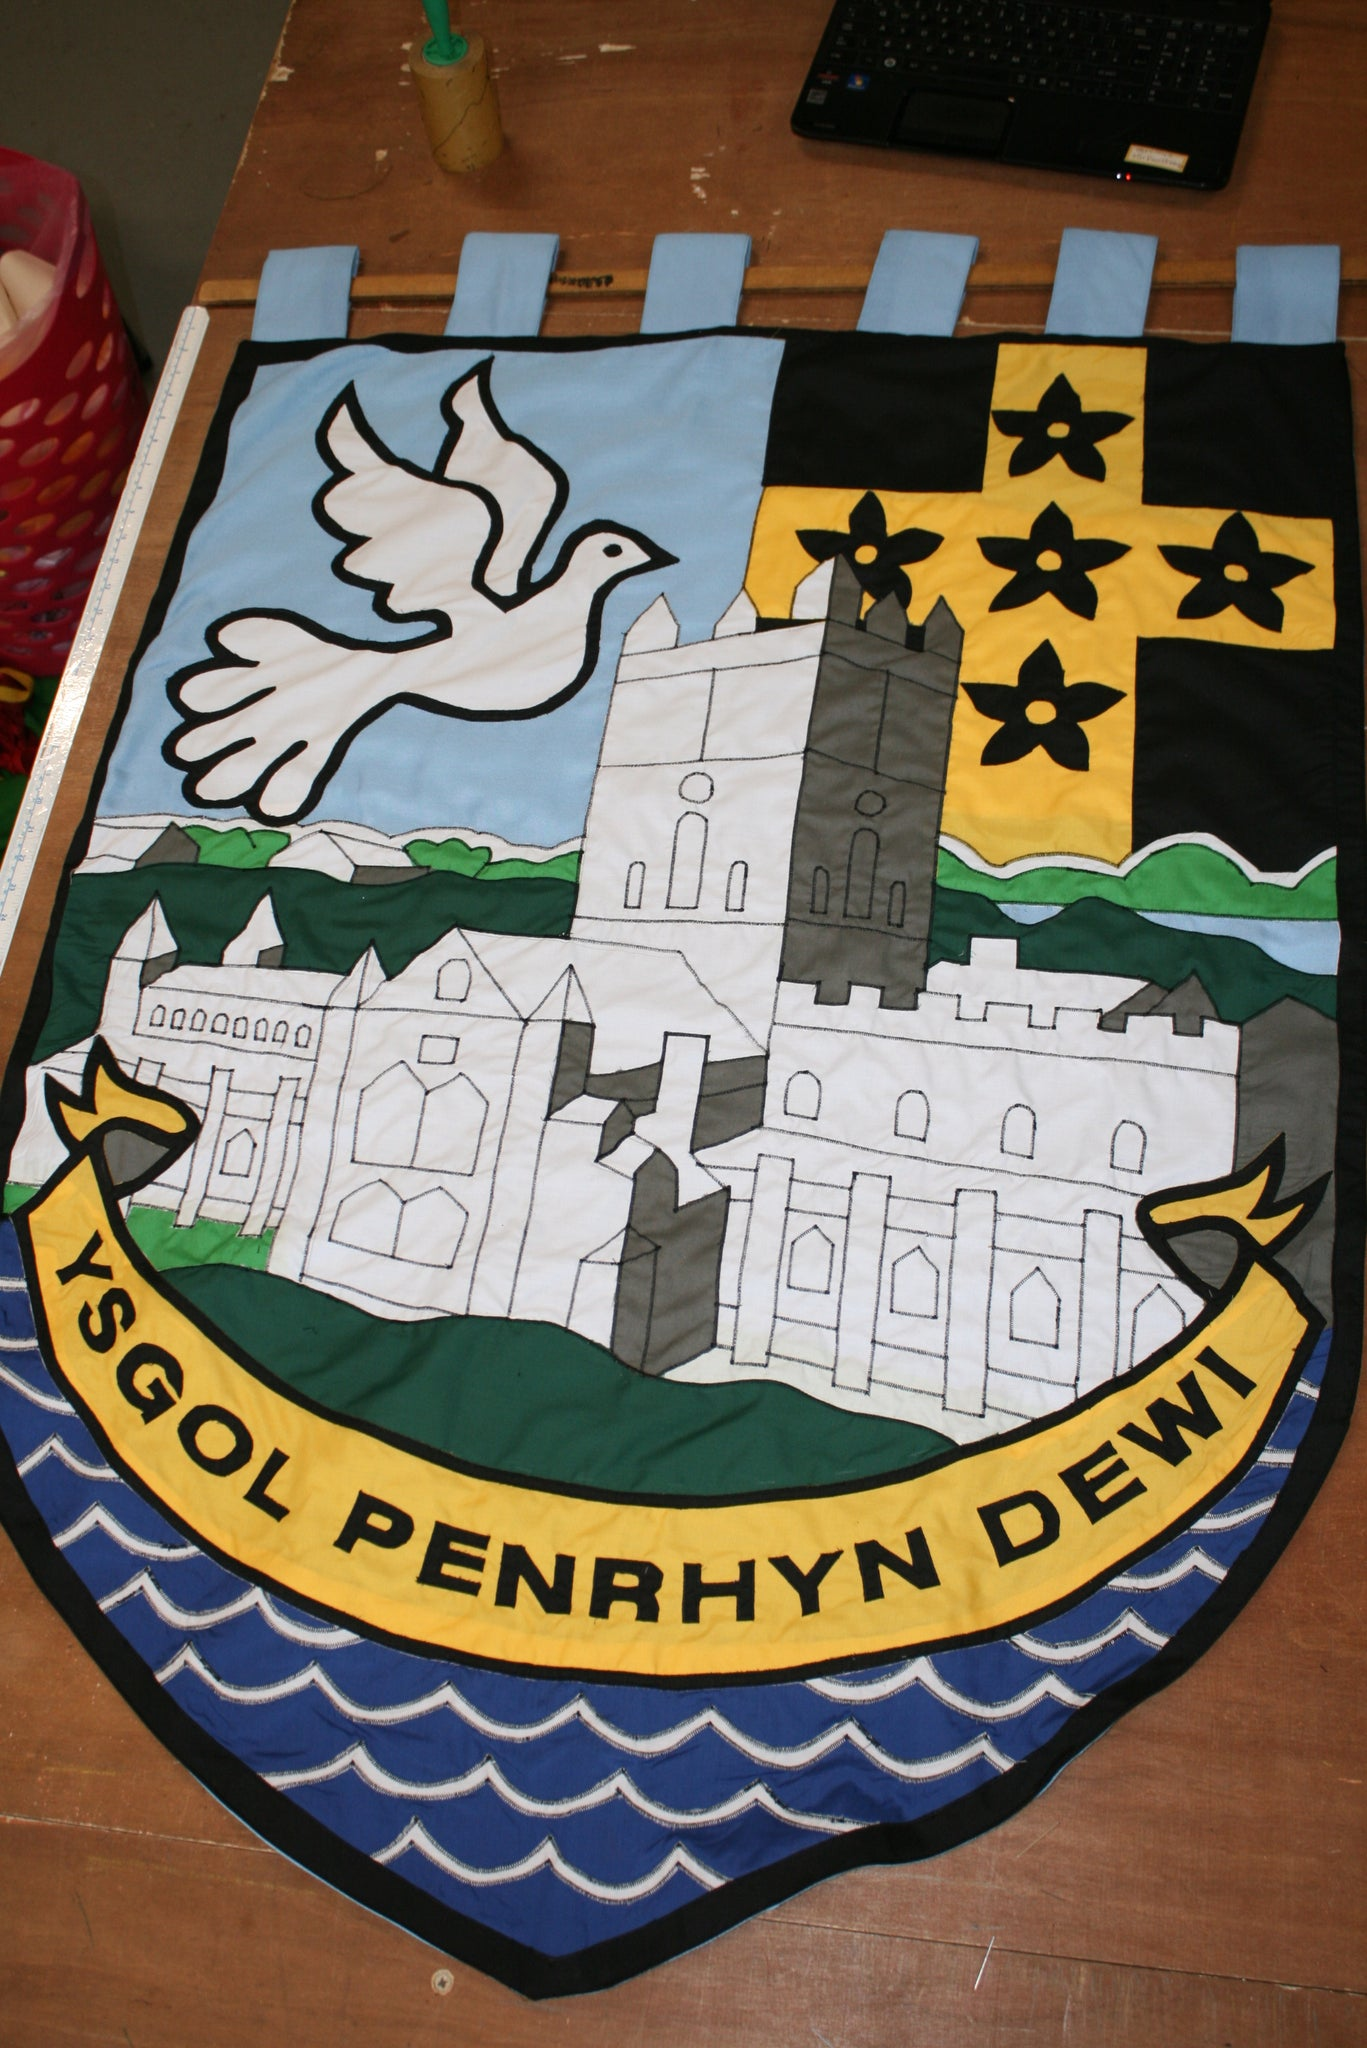 Ysgol dewi sant vexillum gonfalon school banner by Red Dragon Flagmakers